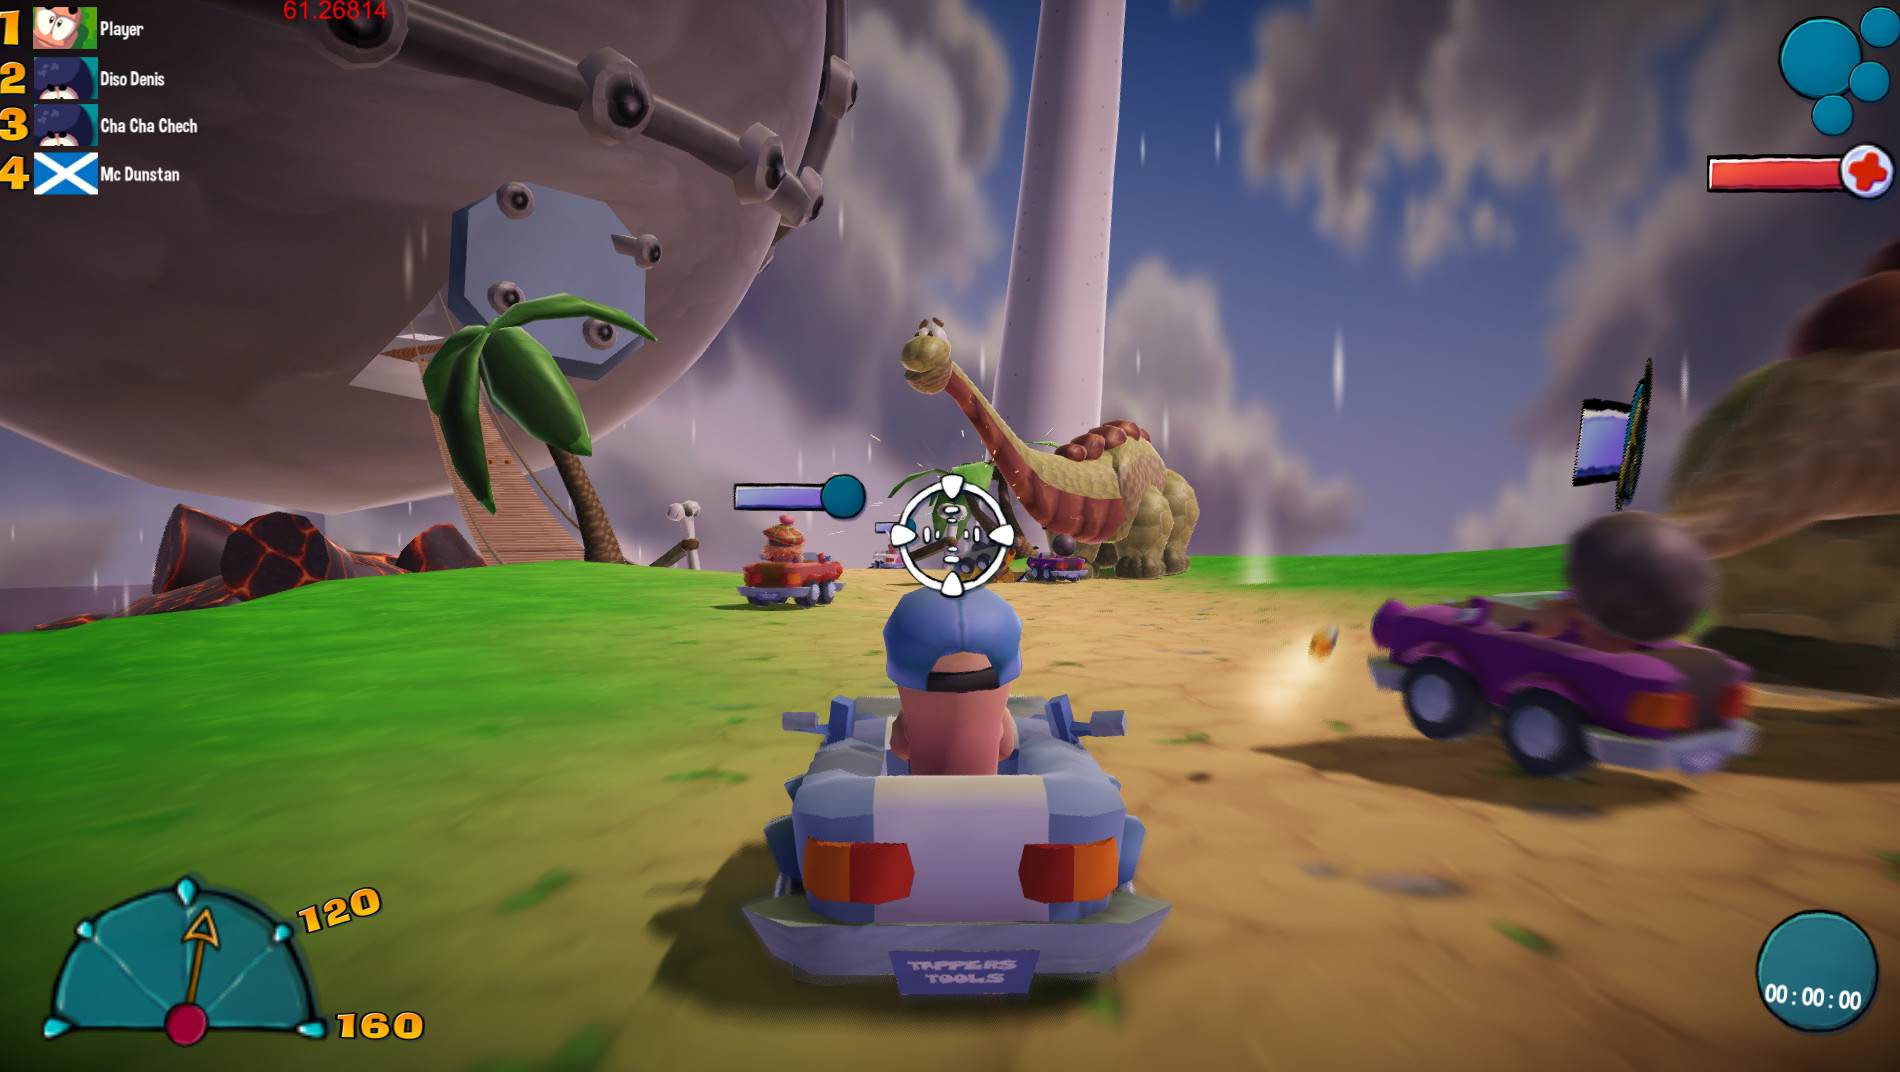 Worms 4 Racing : Mario Kart Game Like based on Worms 4 Mayhem content